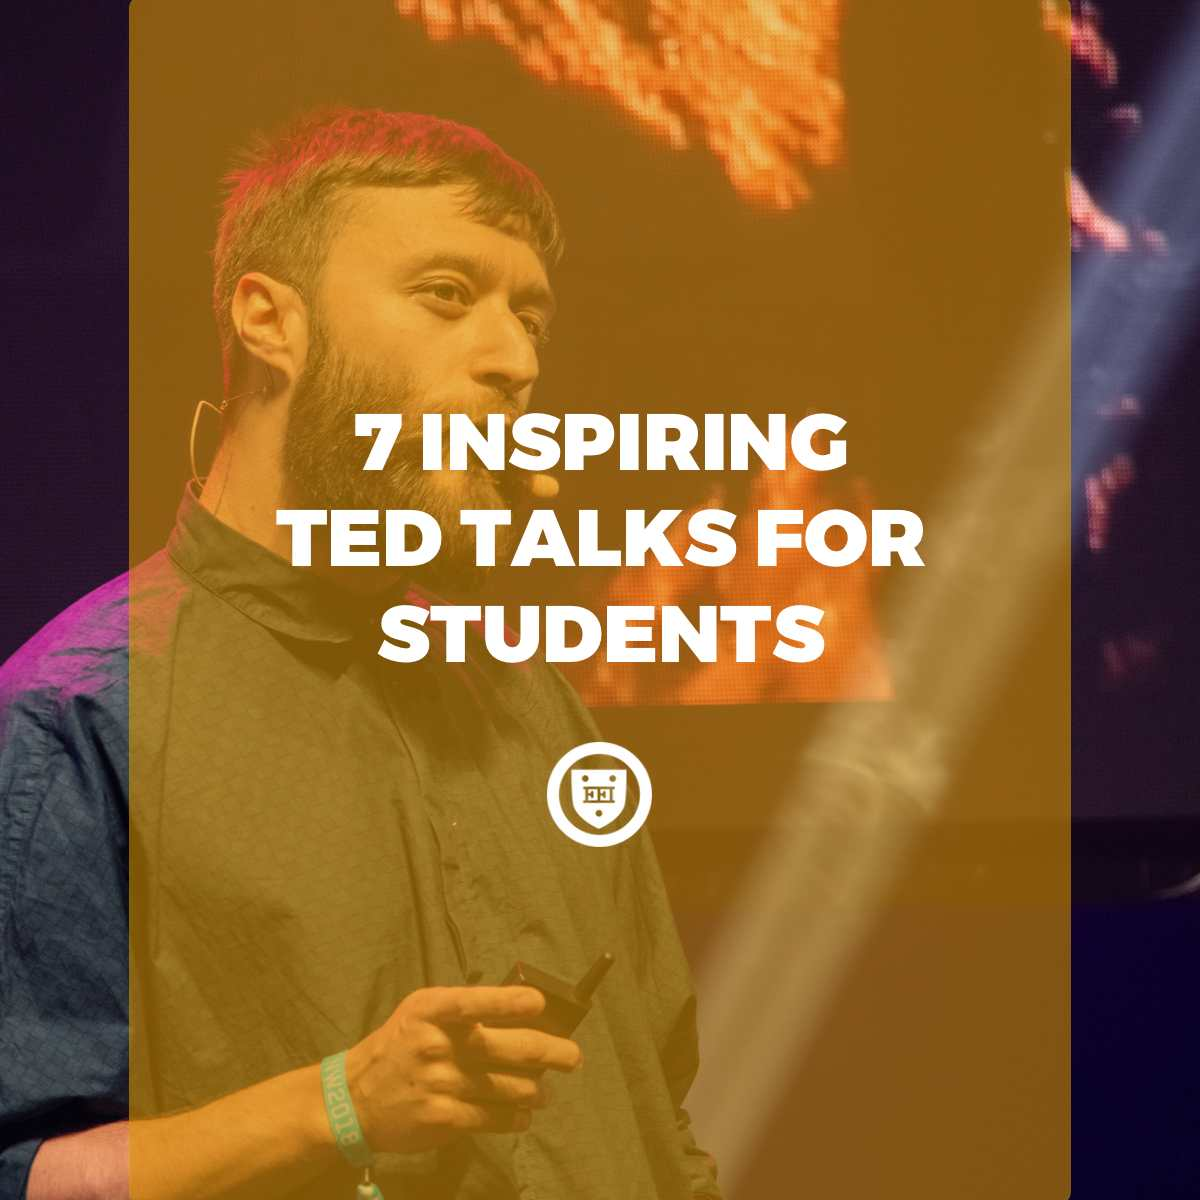 7 Inspiring TED Talks for Students